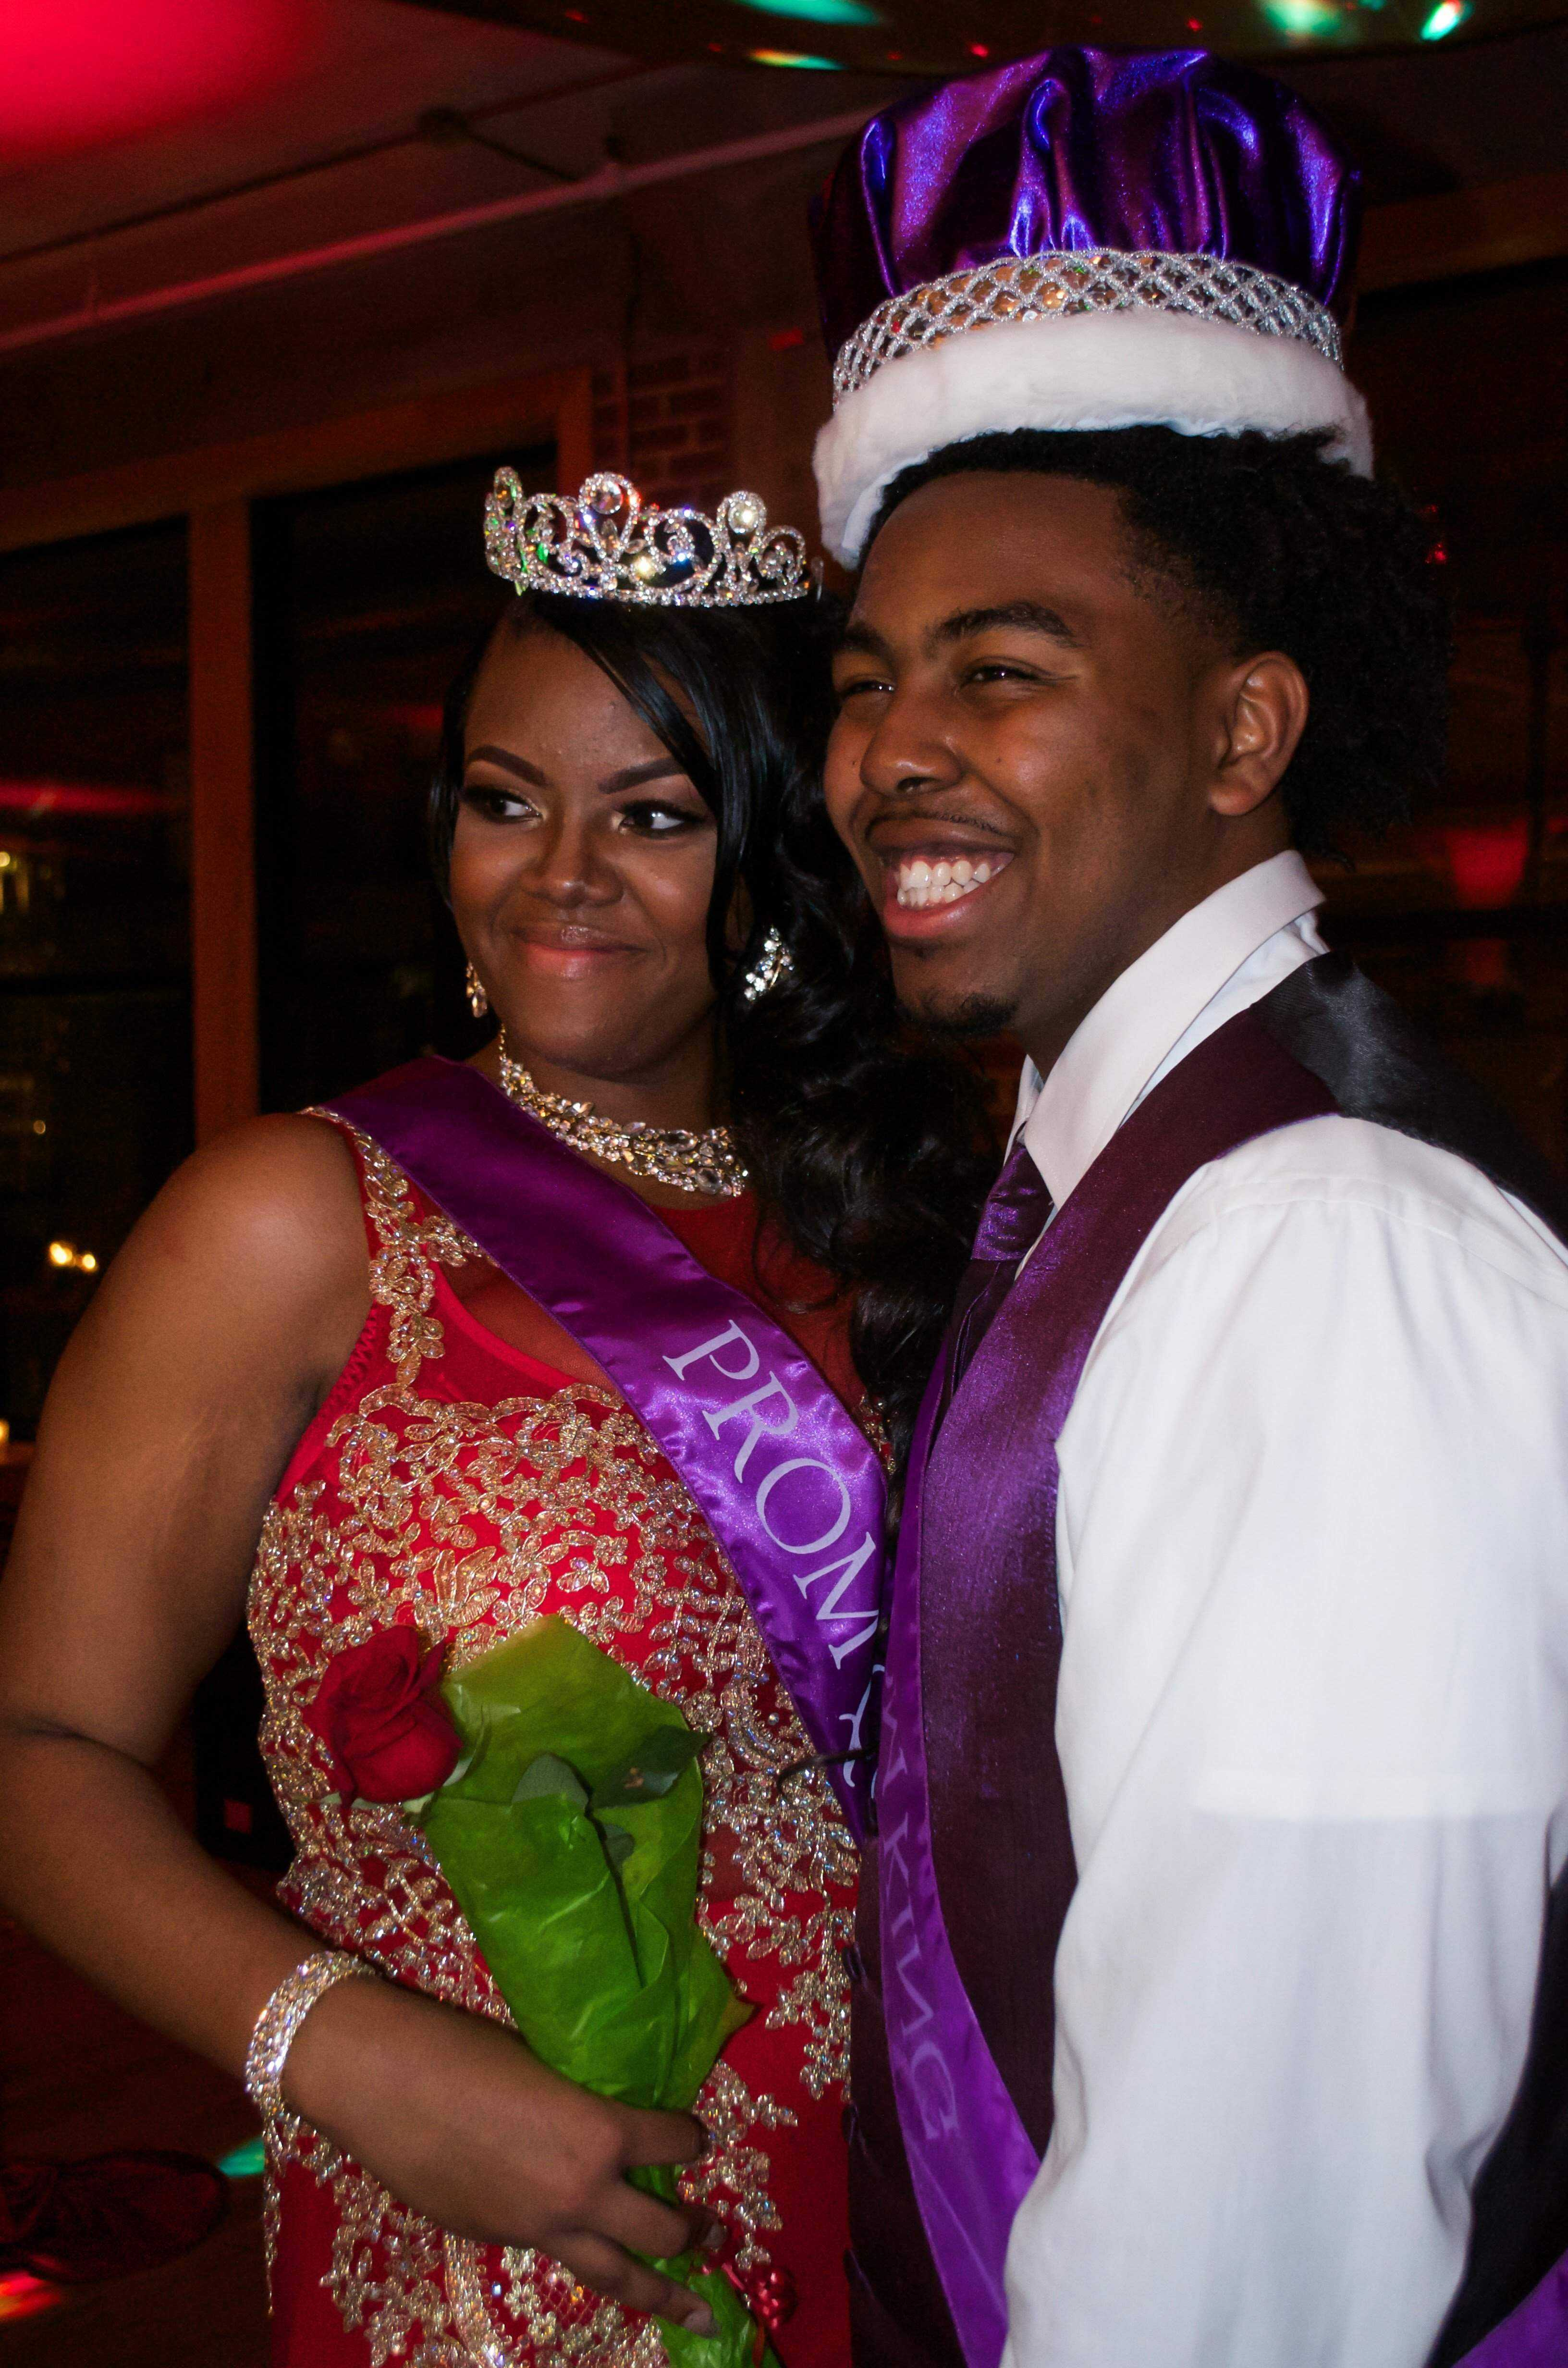 Seniors Amber Frost and Carrington Barnes smile for a picture after being crowned prom queen and king.